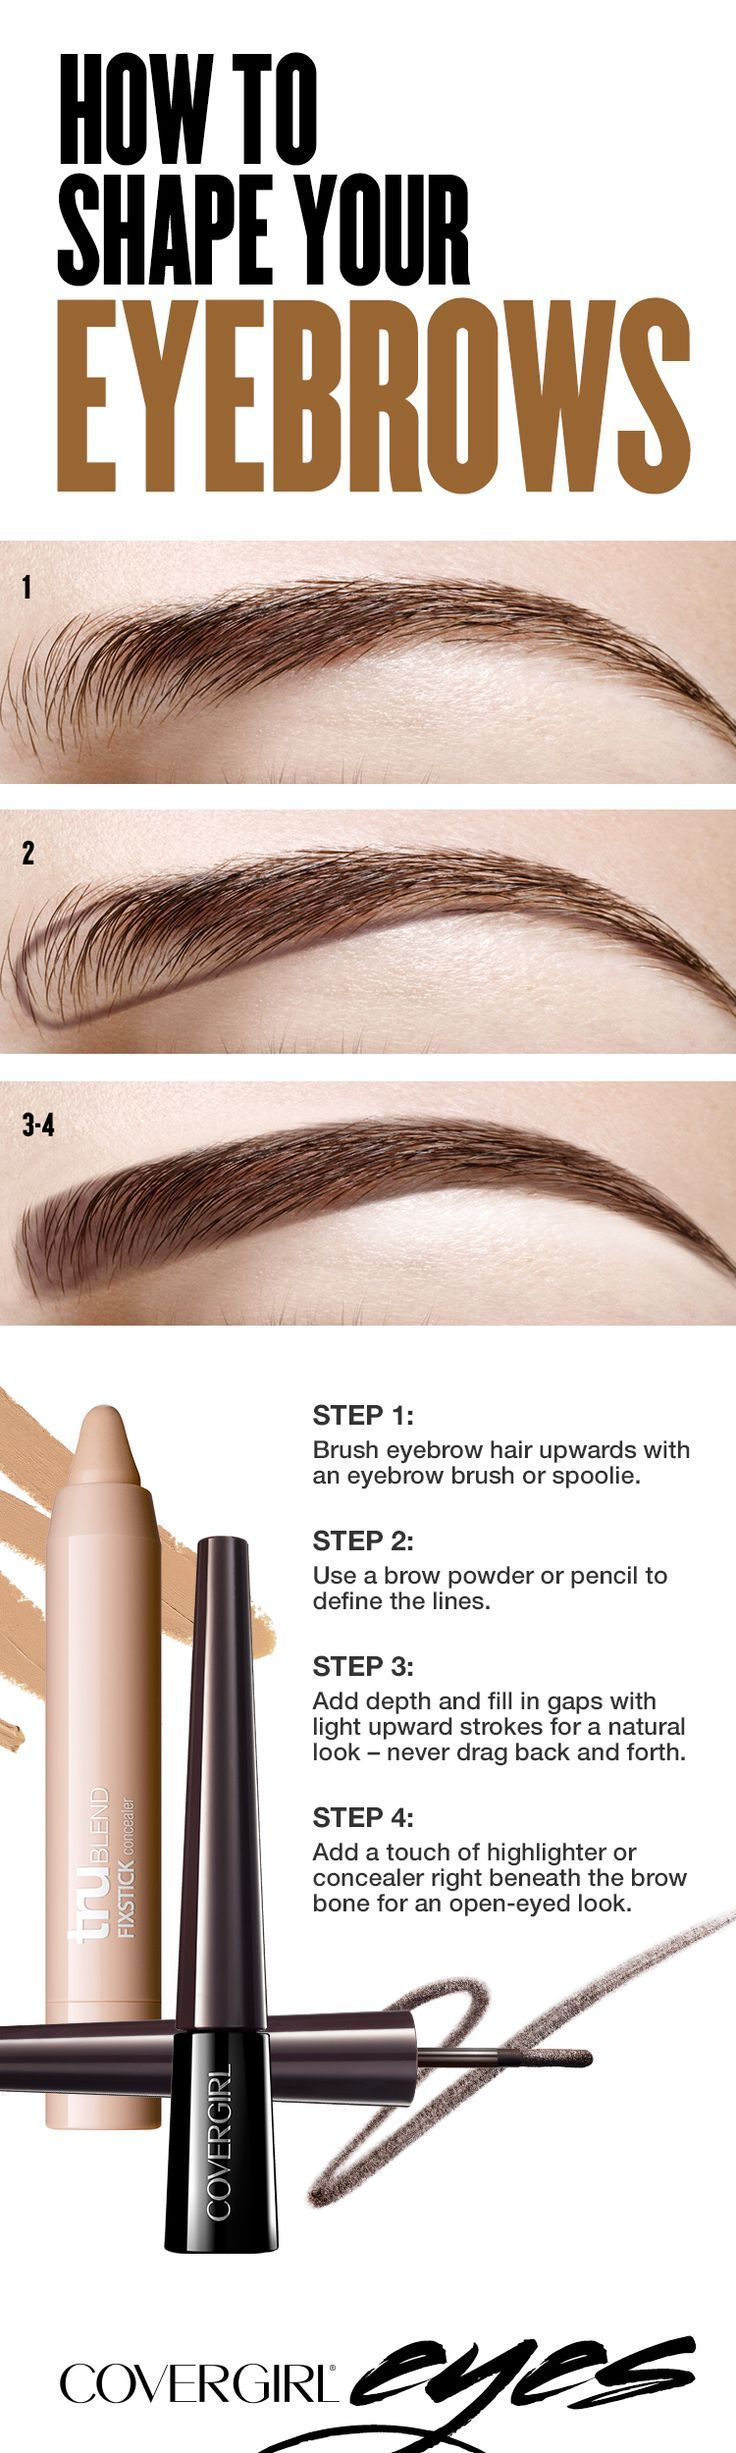 A bold eyebrow isn't only on trend, it automatically helps you look more pulled together &  it's easy to do! STEP 1: Brush eyebrow hair upwards with an eyebrow brush or spoolie. STEP 2: Use a brow powder or pencil to define the lines. STEP 3: Add depth and fill in gaps with light upward strokes for a natural look; never drag back and forth. STEP 4: Add a touch of highlighter or concealer right beneath the brow bone for an open-eyed look.